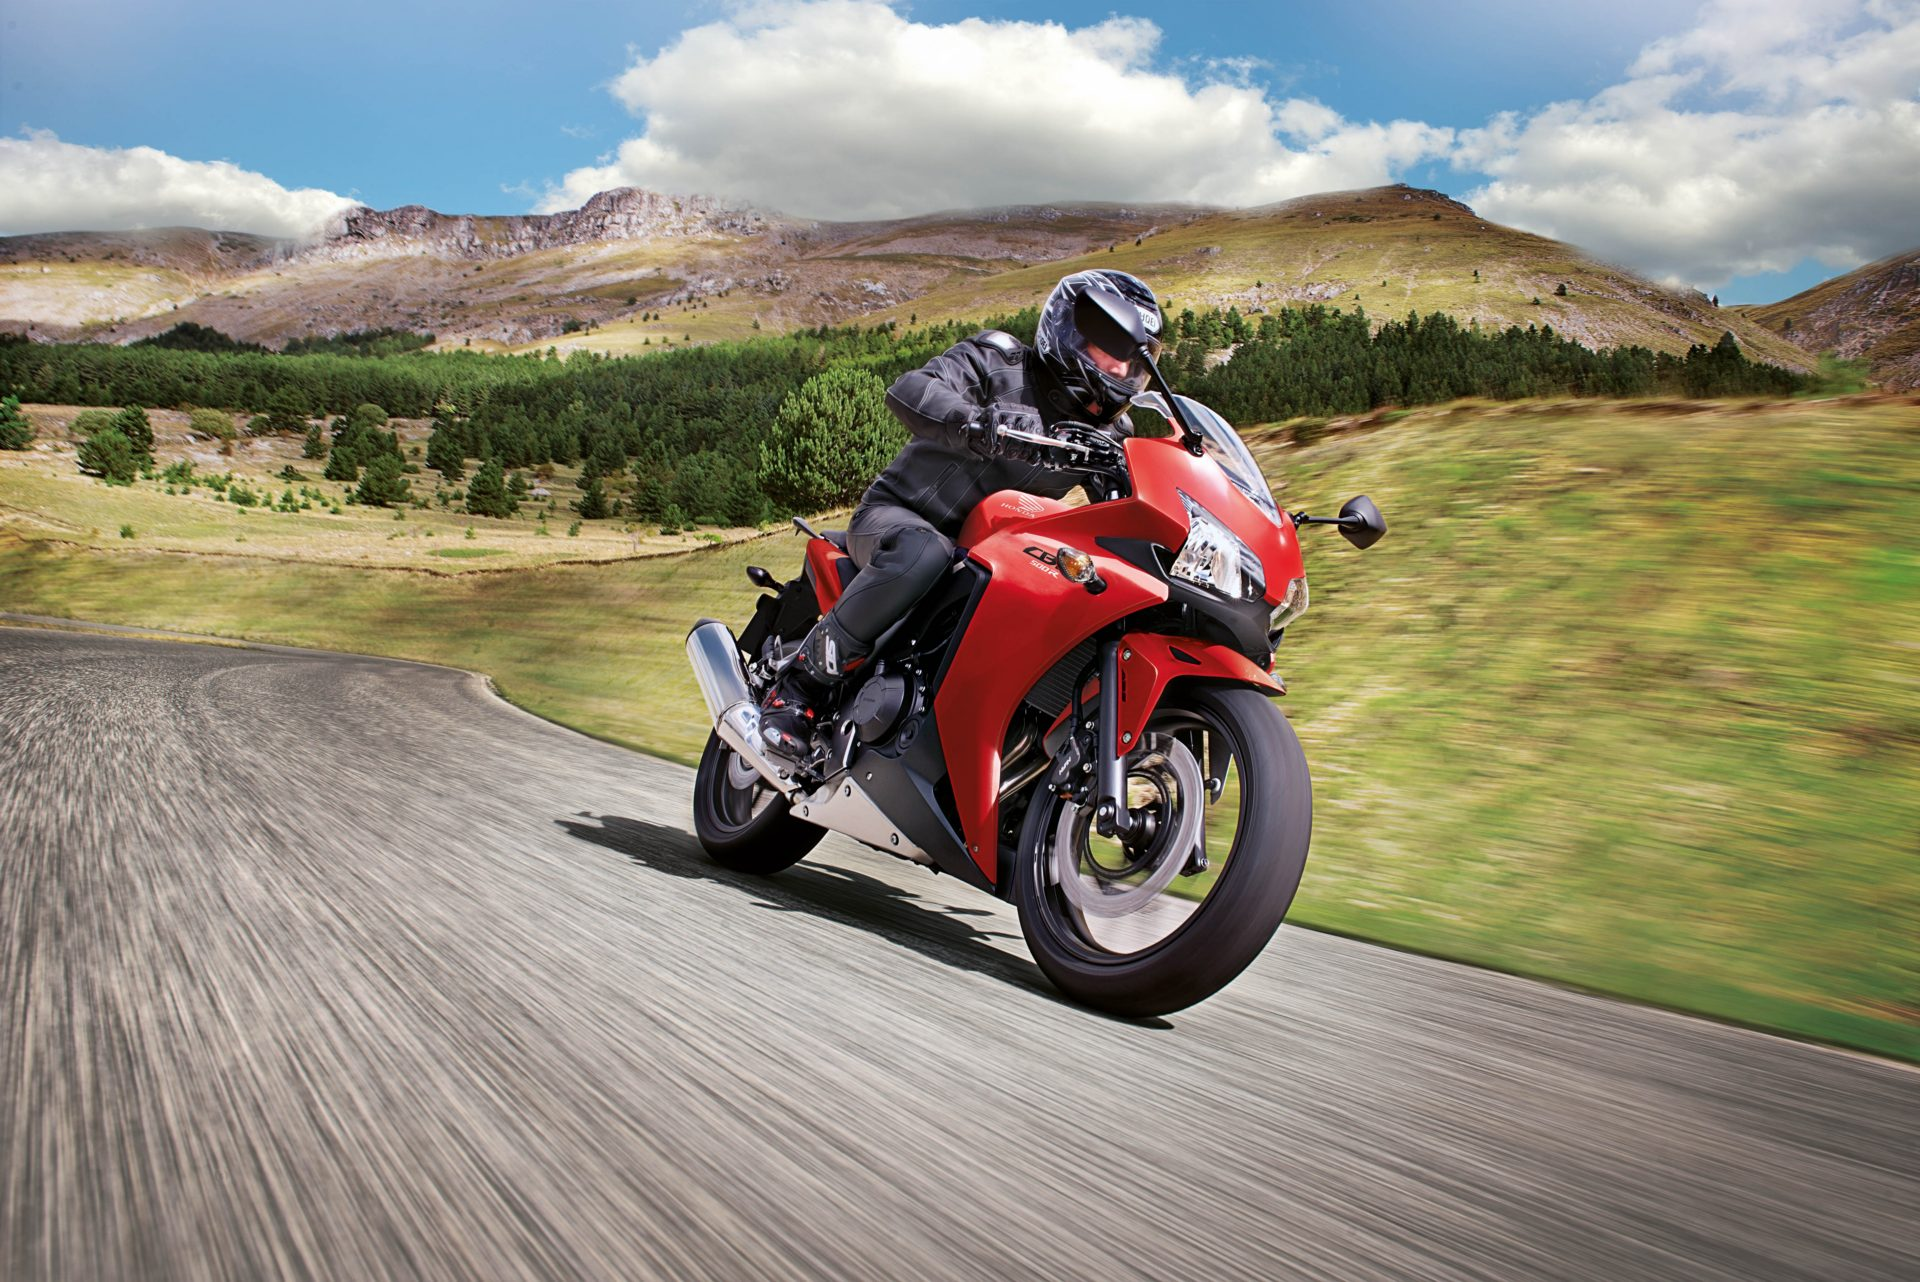 Enter The 2015 Honda Cbr500r A2 License Friendly And Really Cool